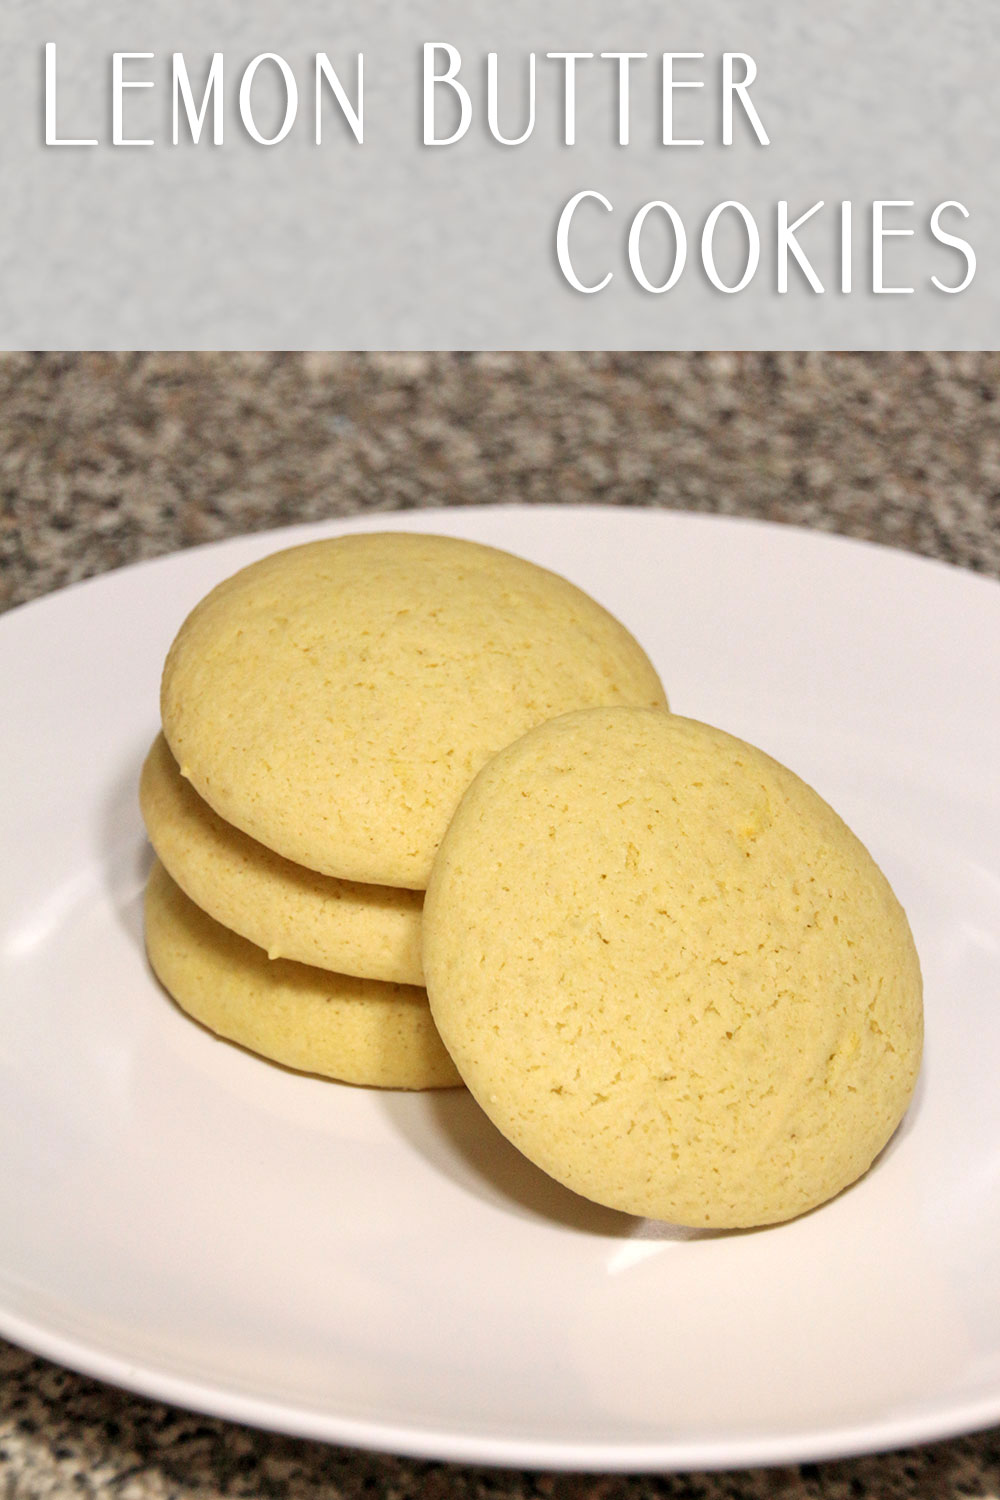 These cookies are delicious – lemony, nice and chewy, and just an ...